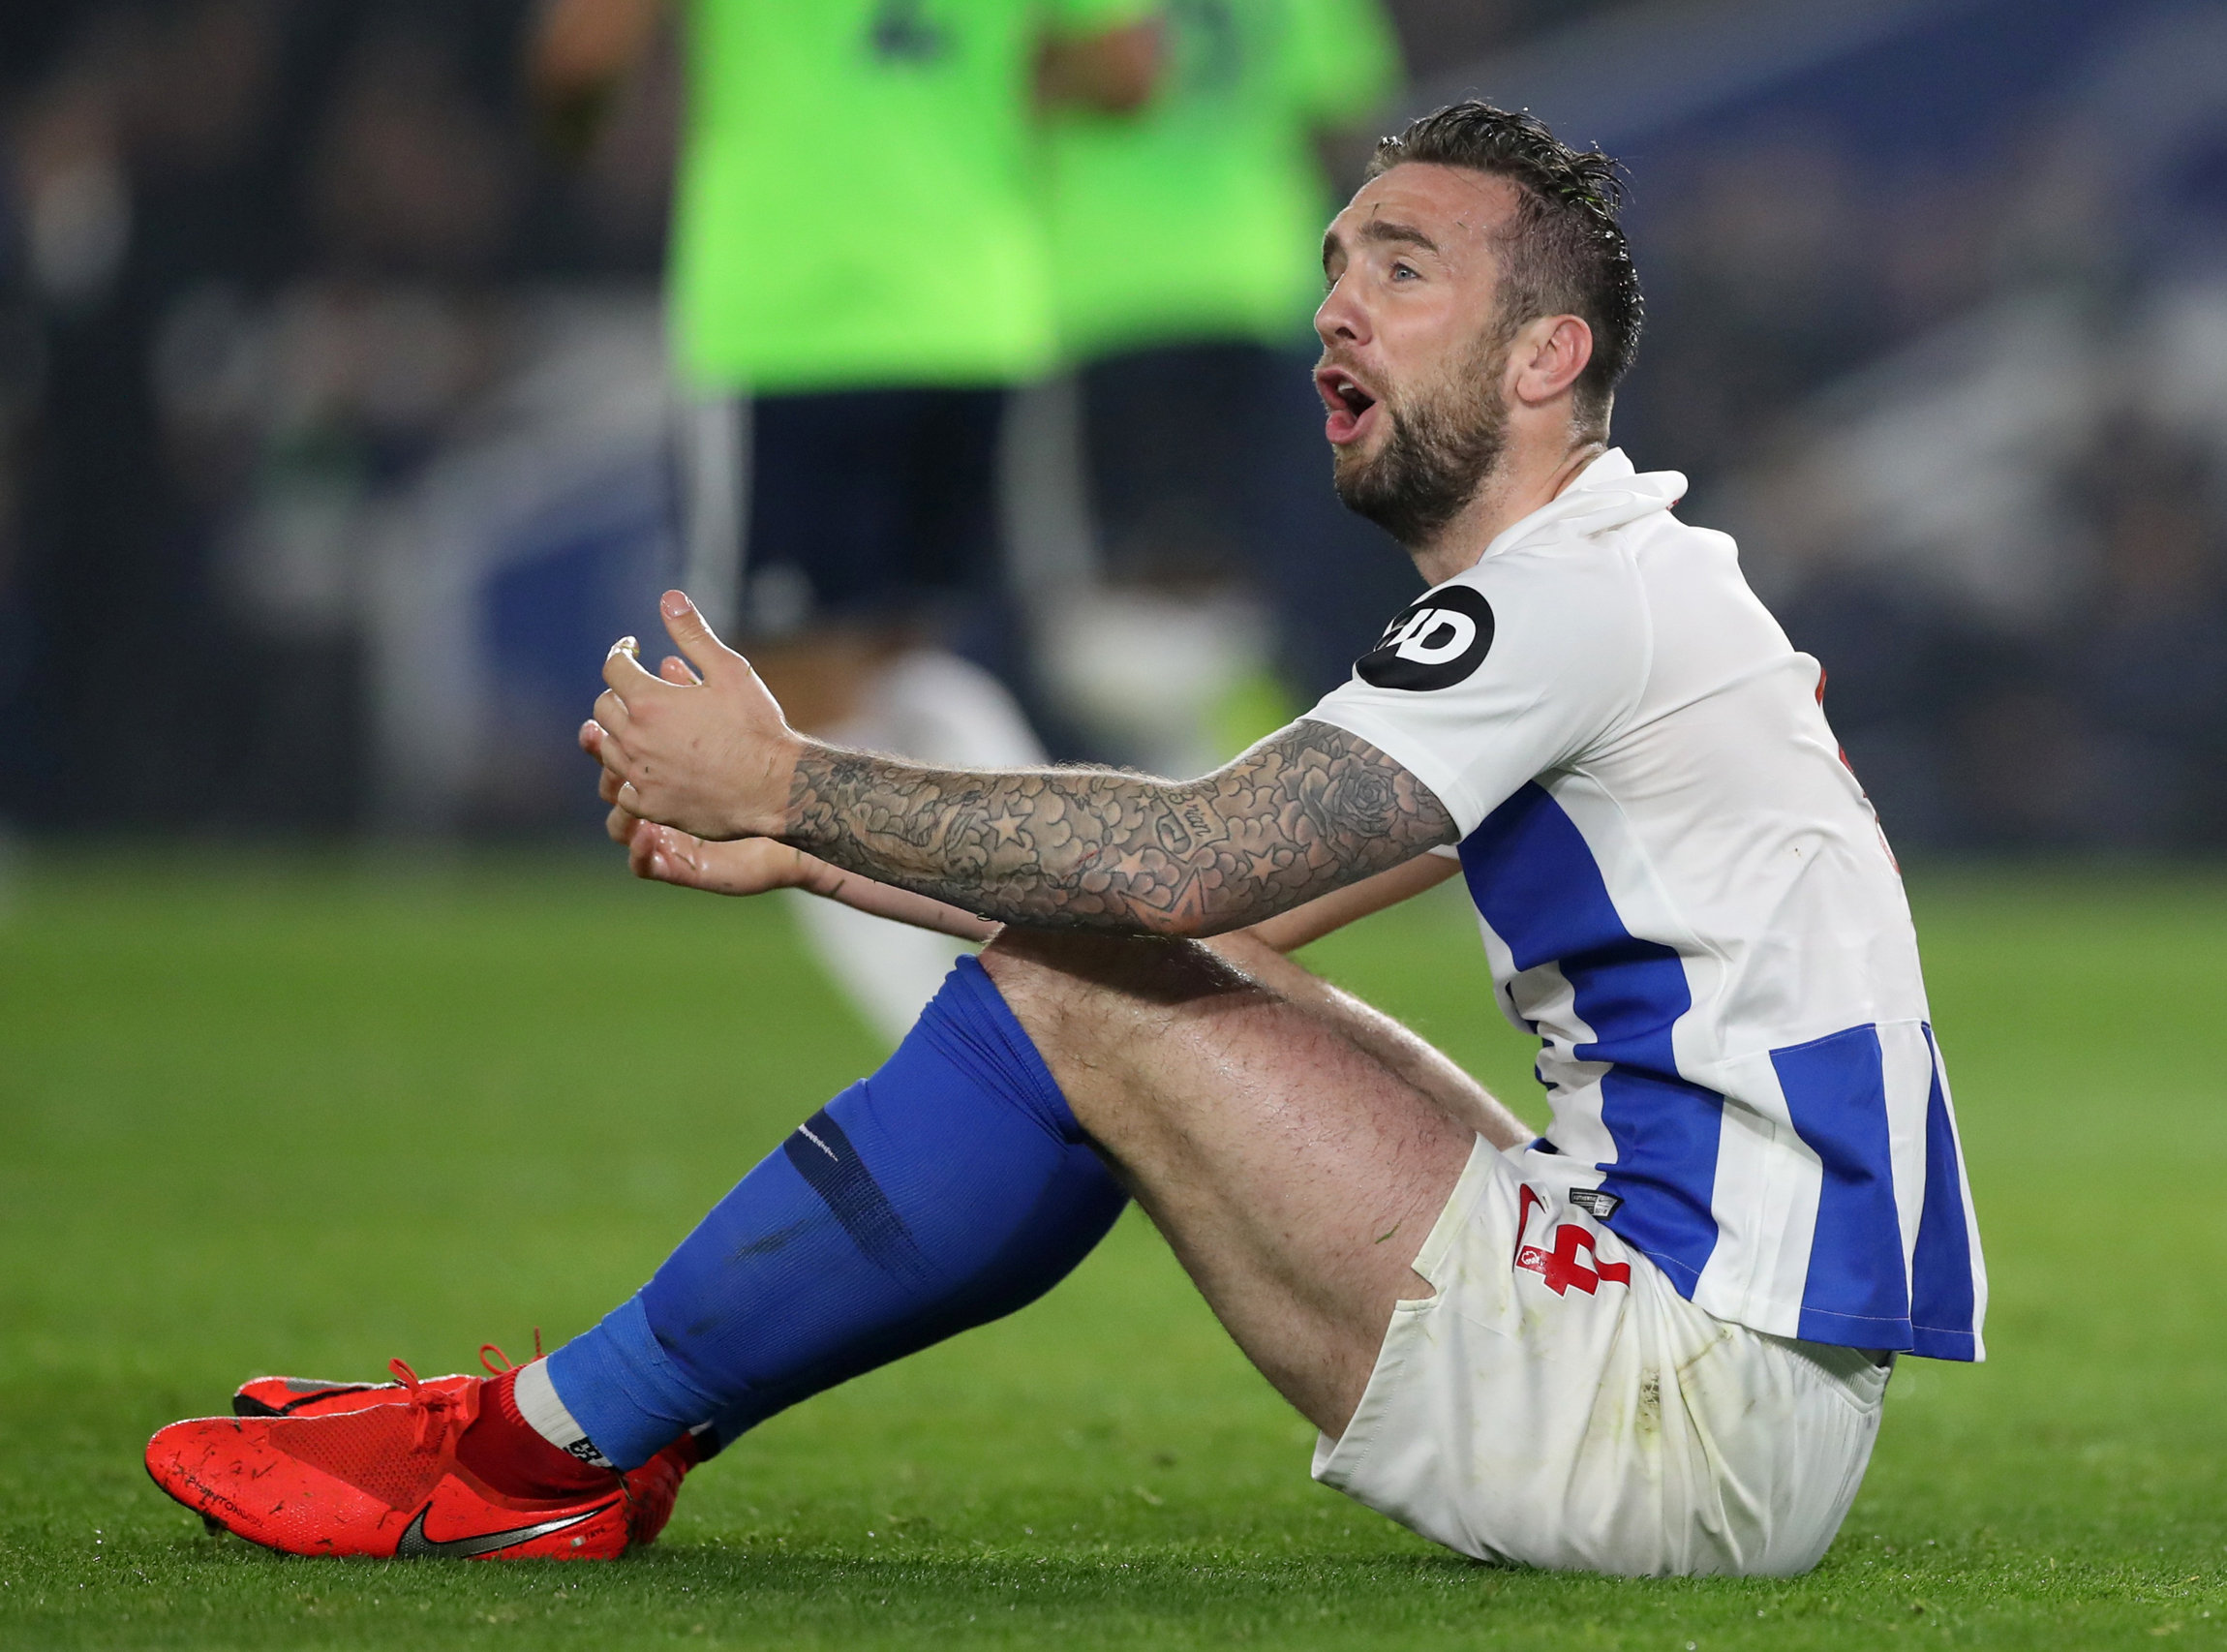 → How many points did Shane Duffy score in total in Brighton's disastrous Double Gameweek 34?